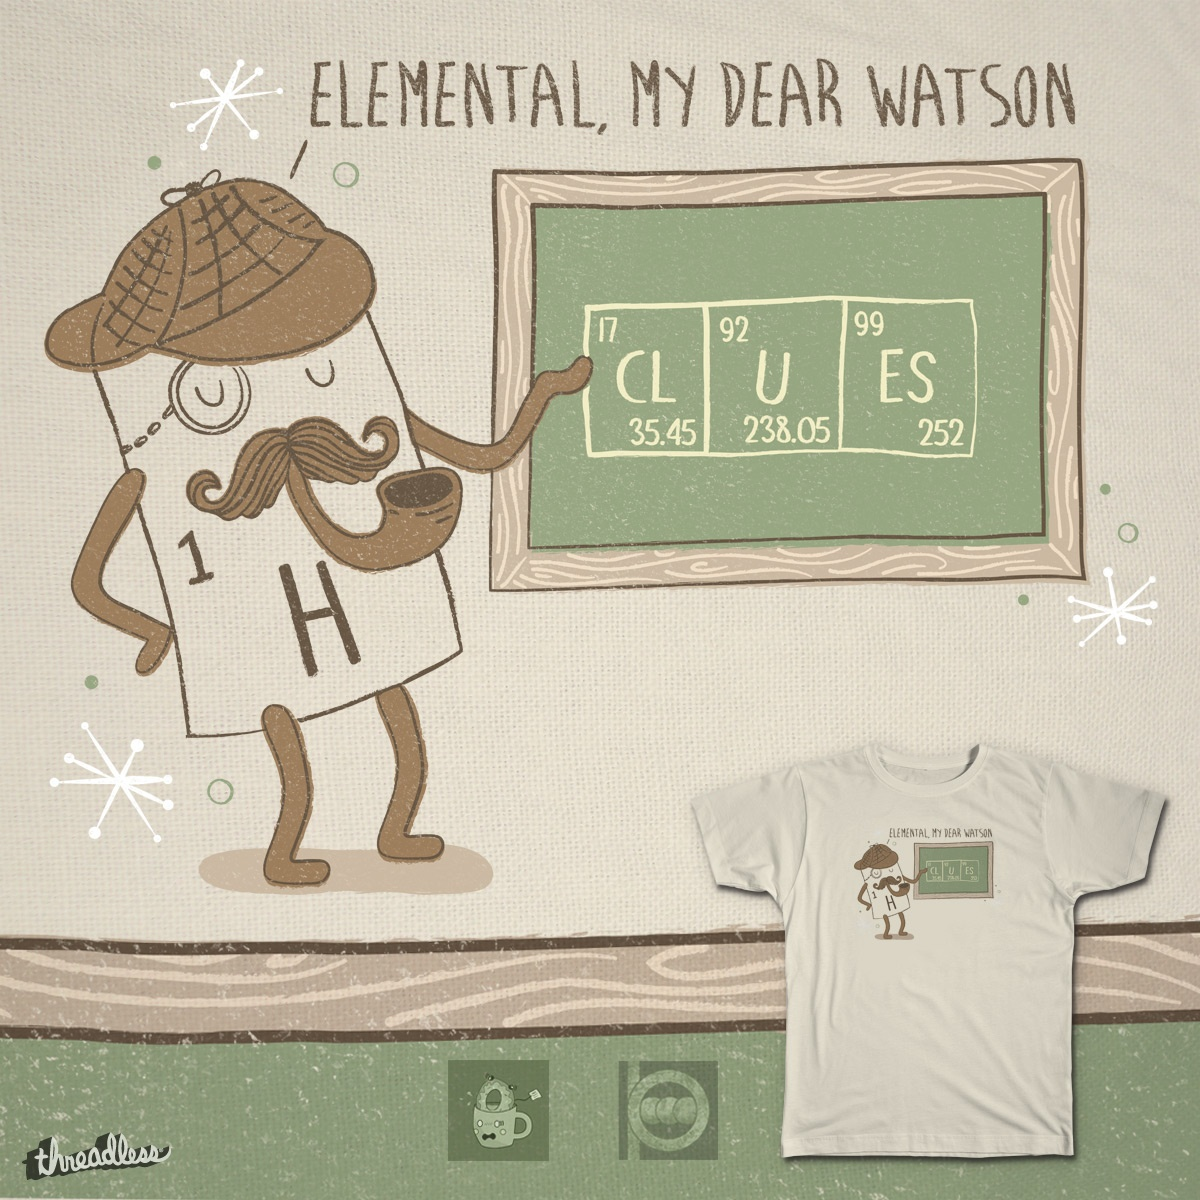 HAPPY NATIONAL PERIODIC TABLE DAY EVERYONE!!